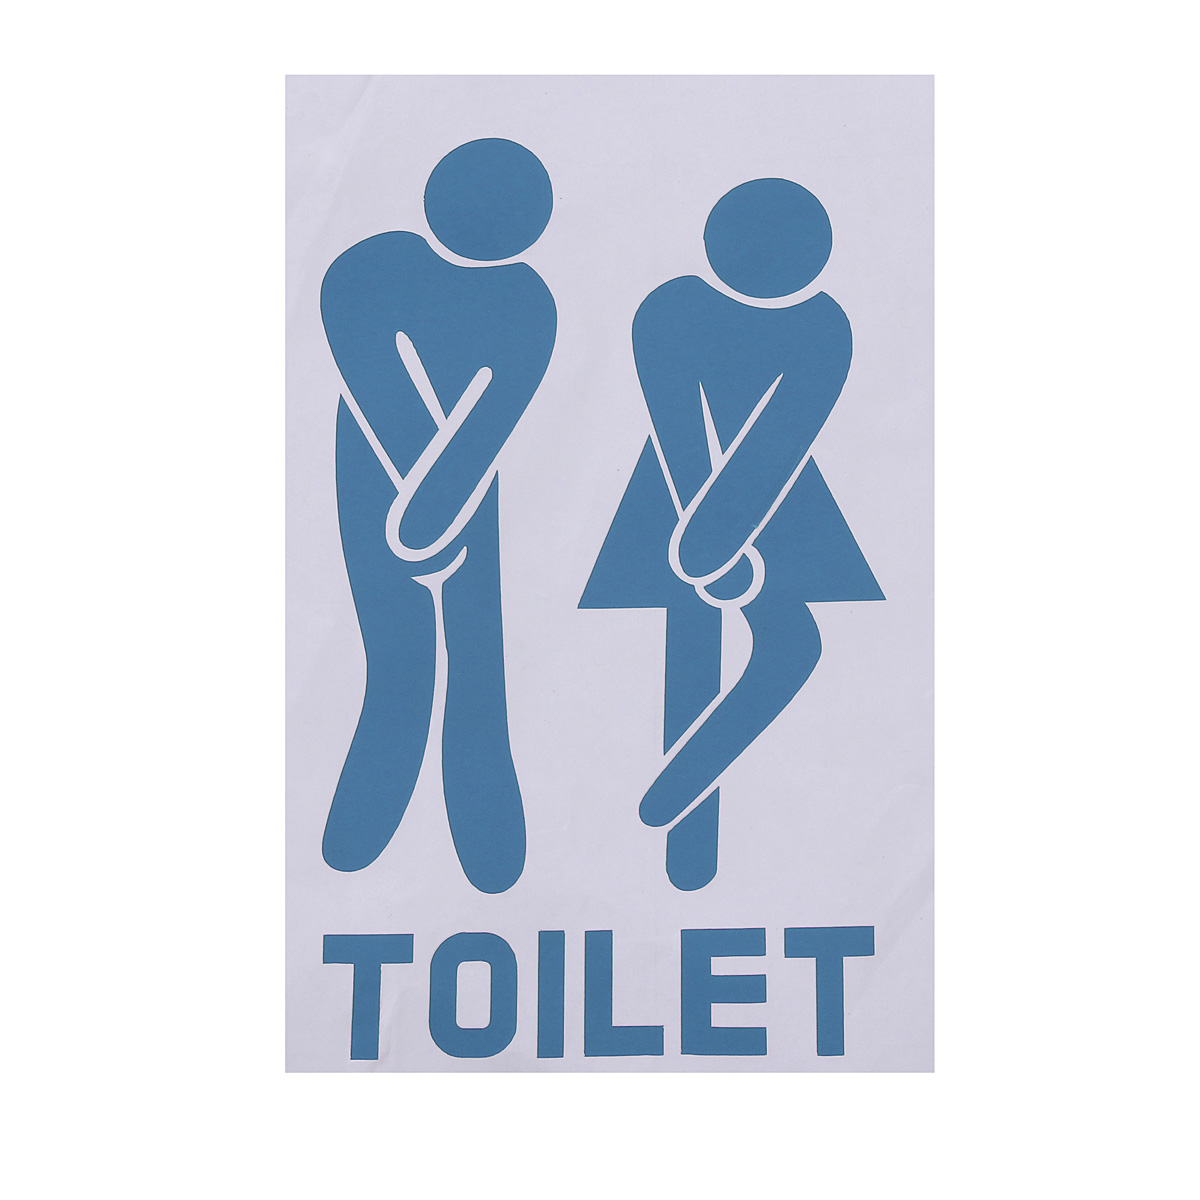 Wc toilet door sign sticker shop home bathroom door decal vinyl funny art decor ebay - Decor wc ...